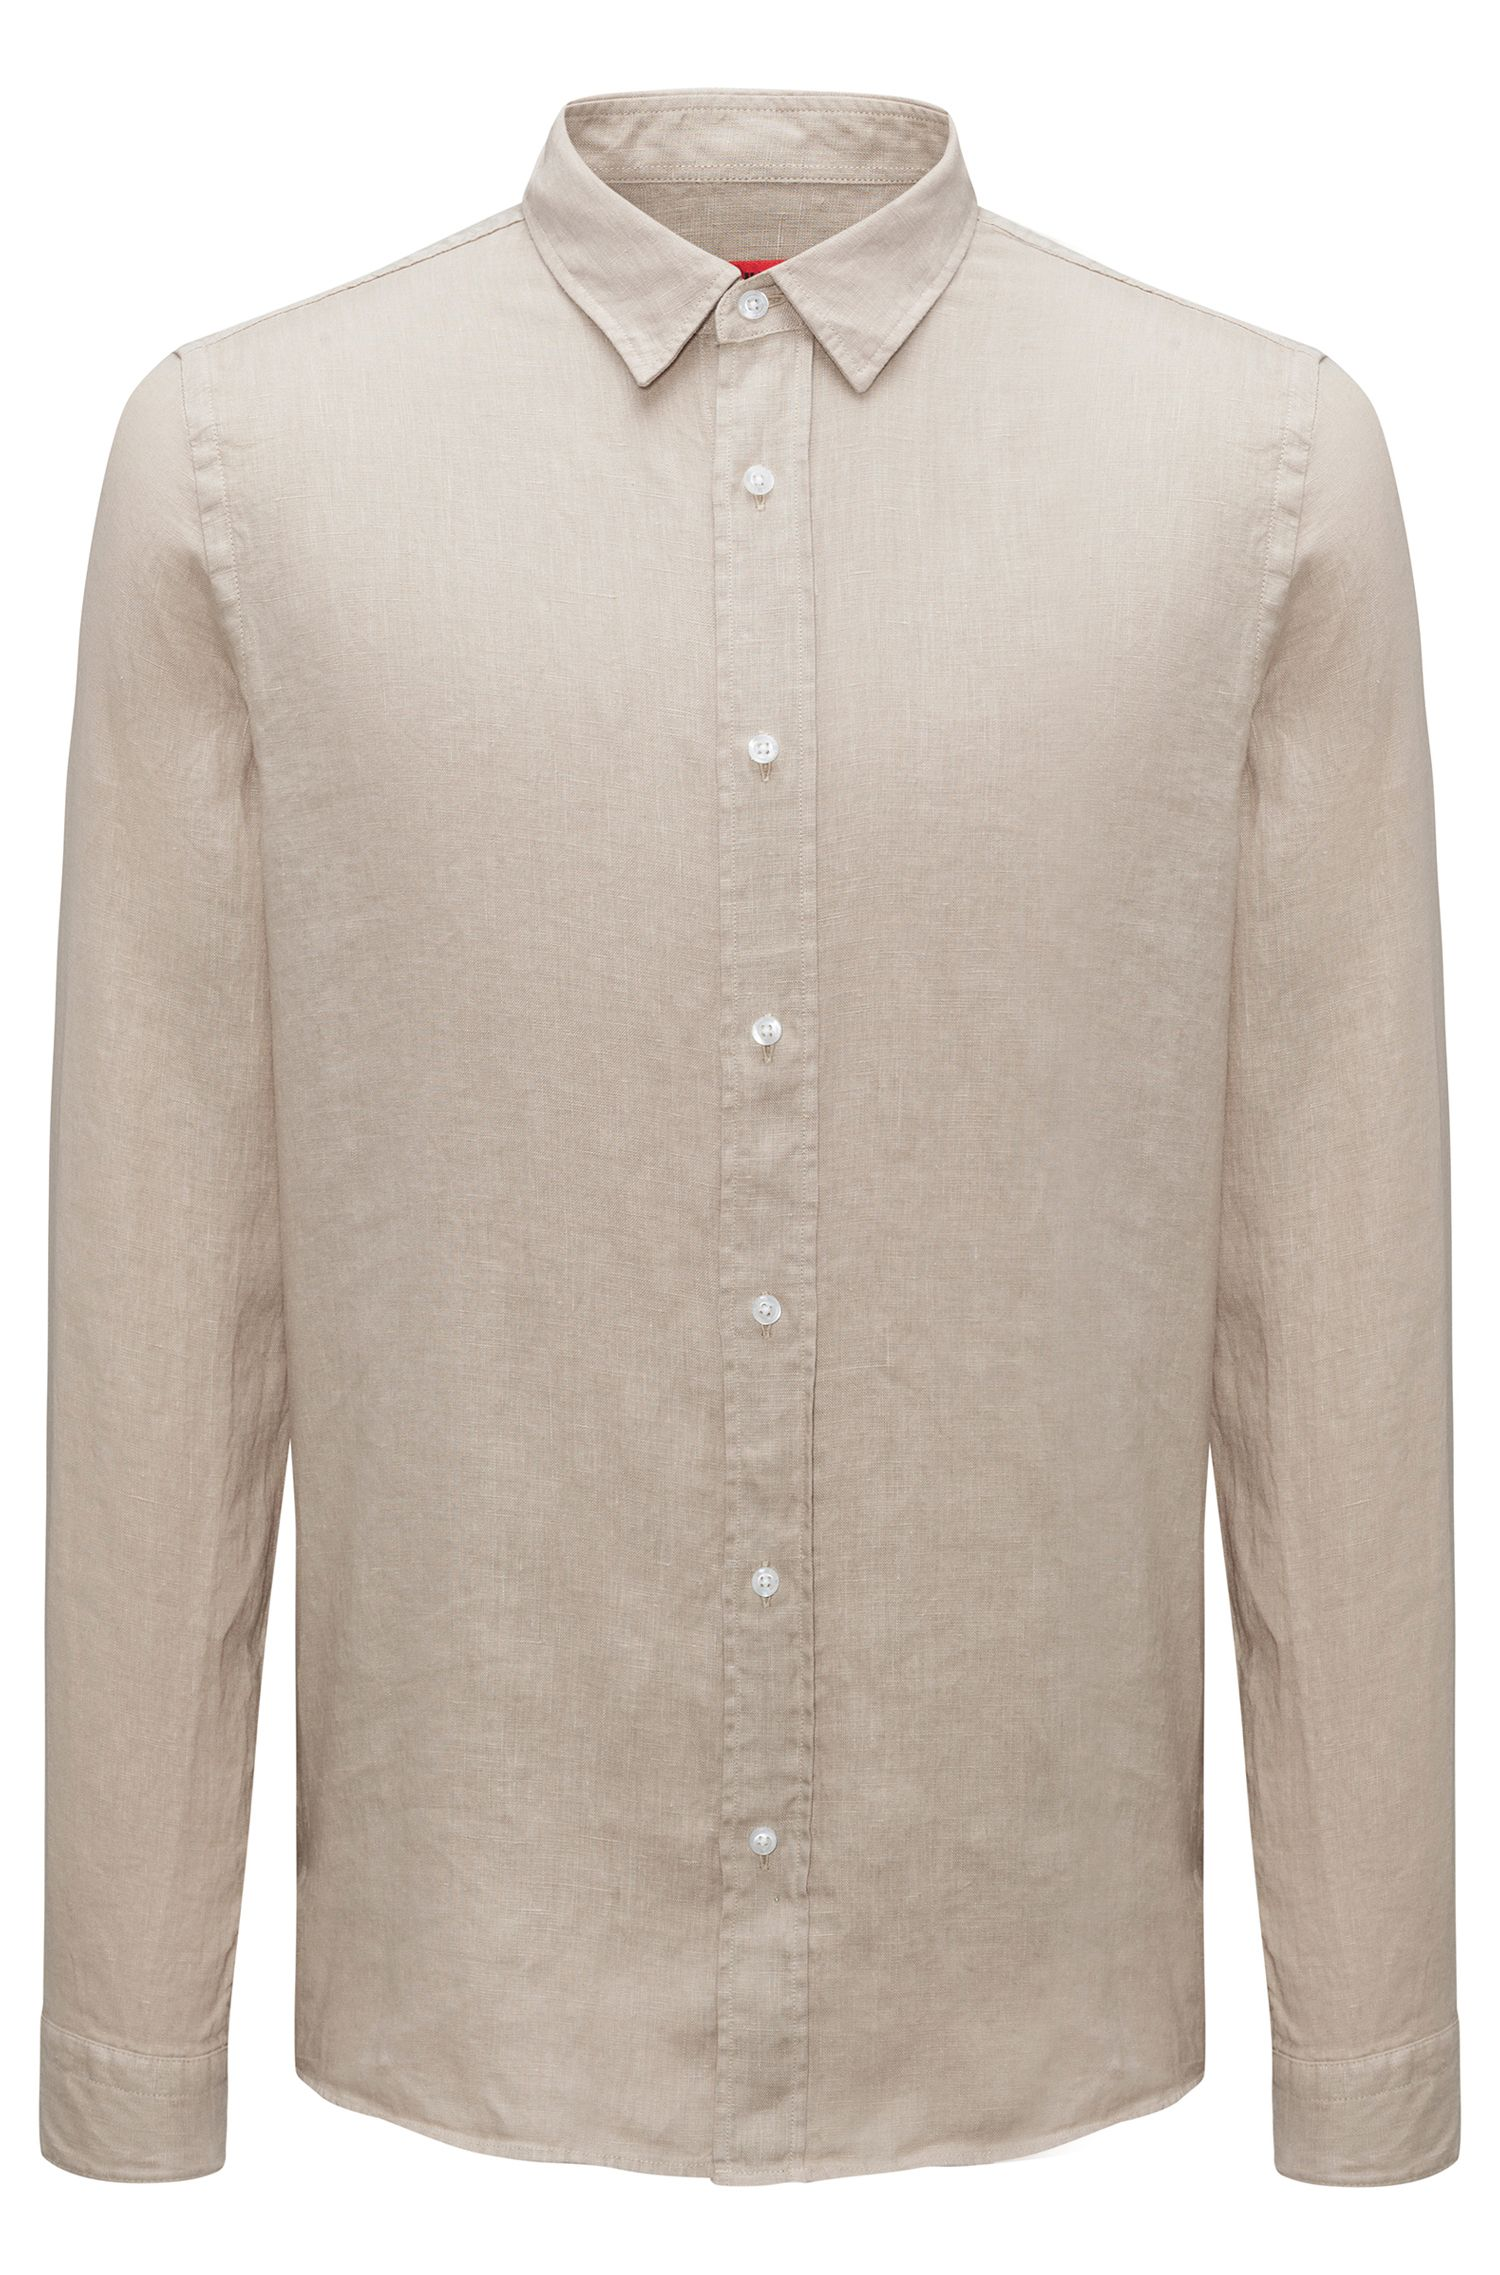 Linen shirt in a relaxed fit